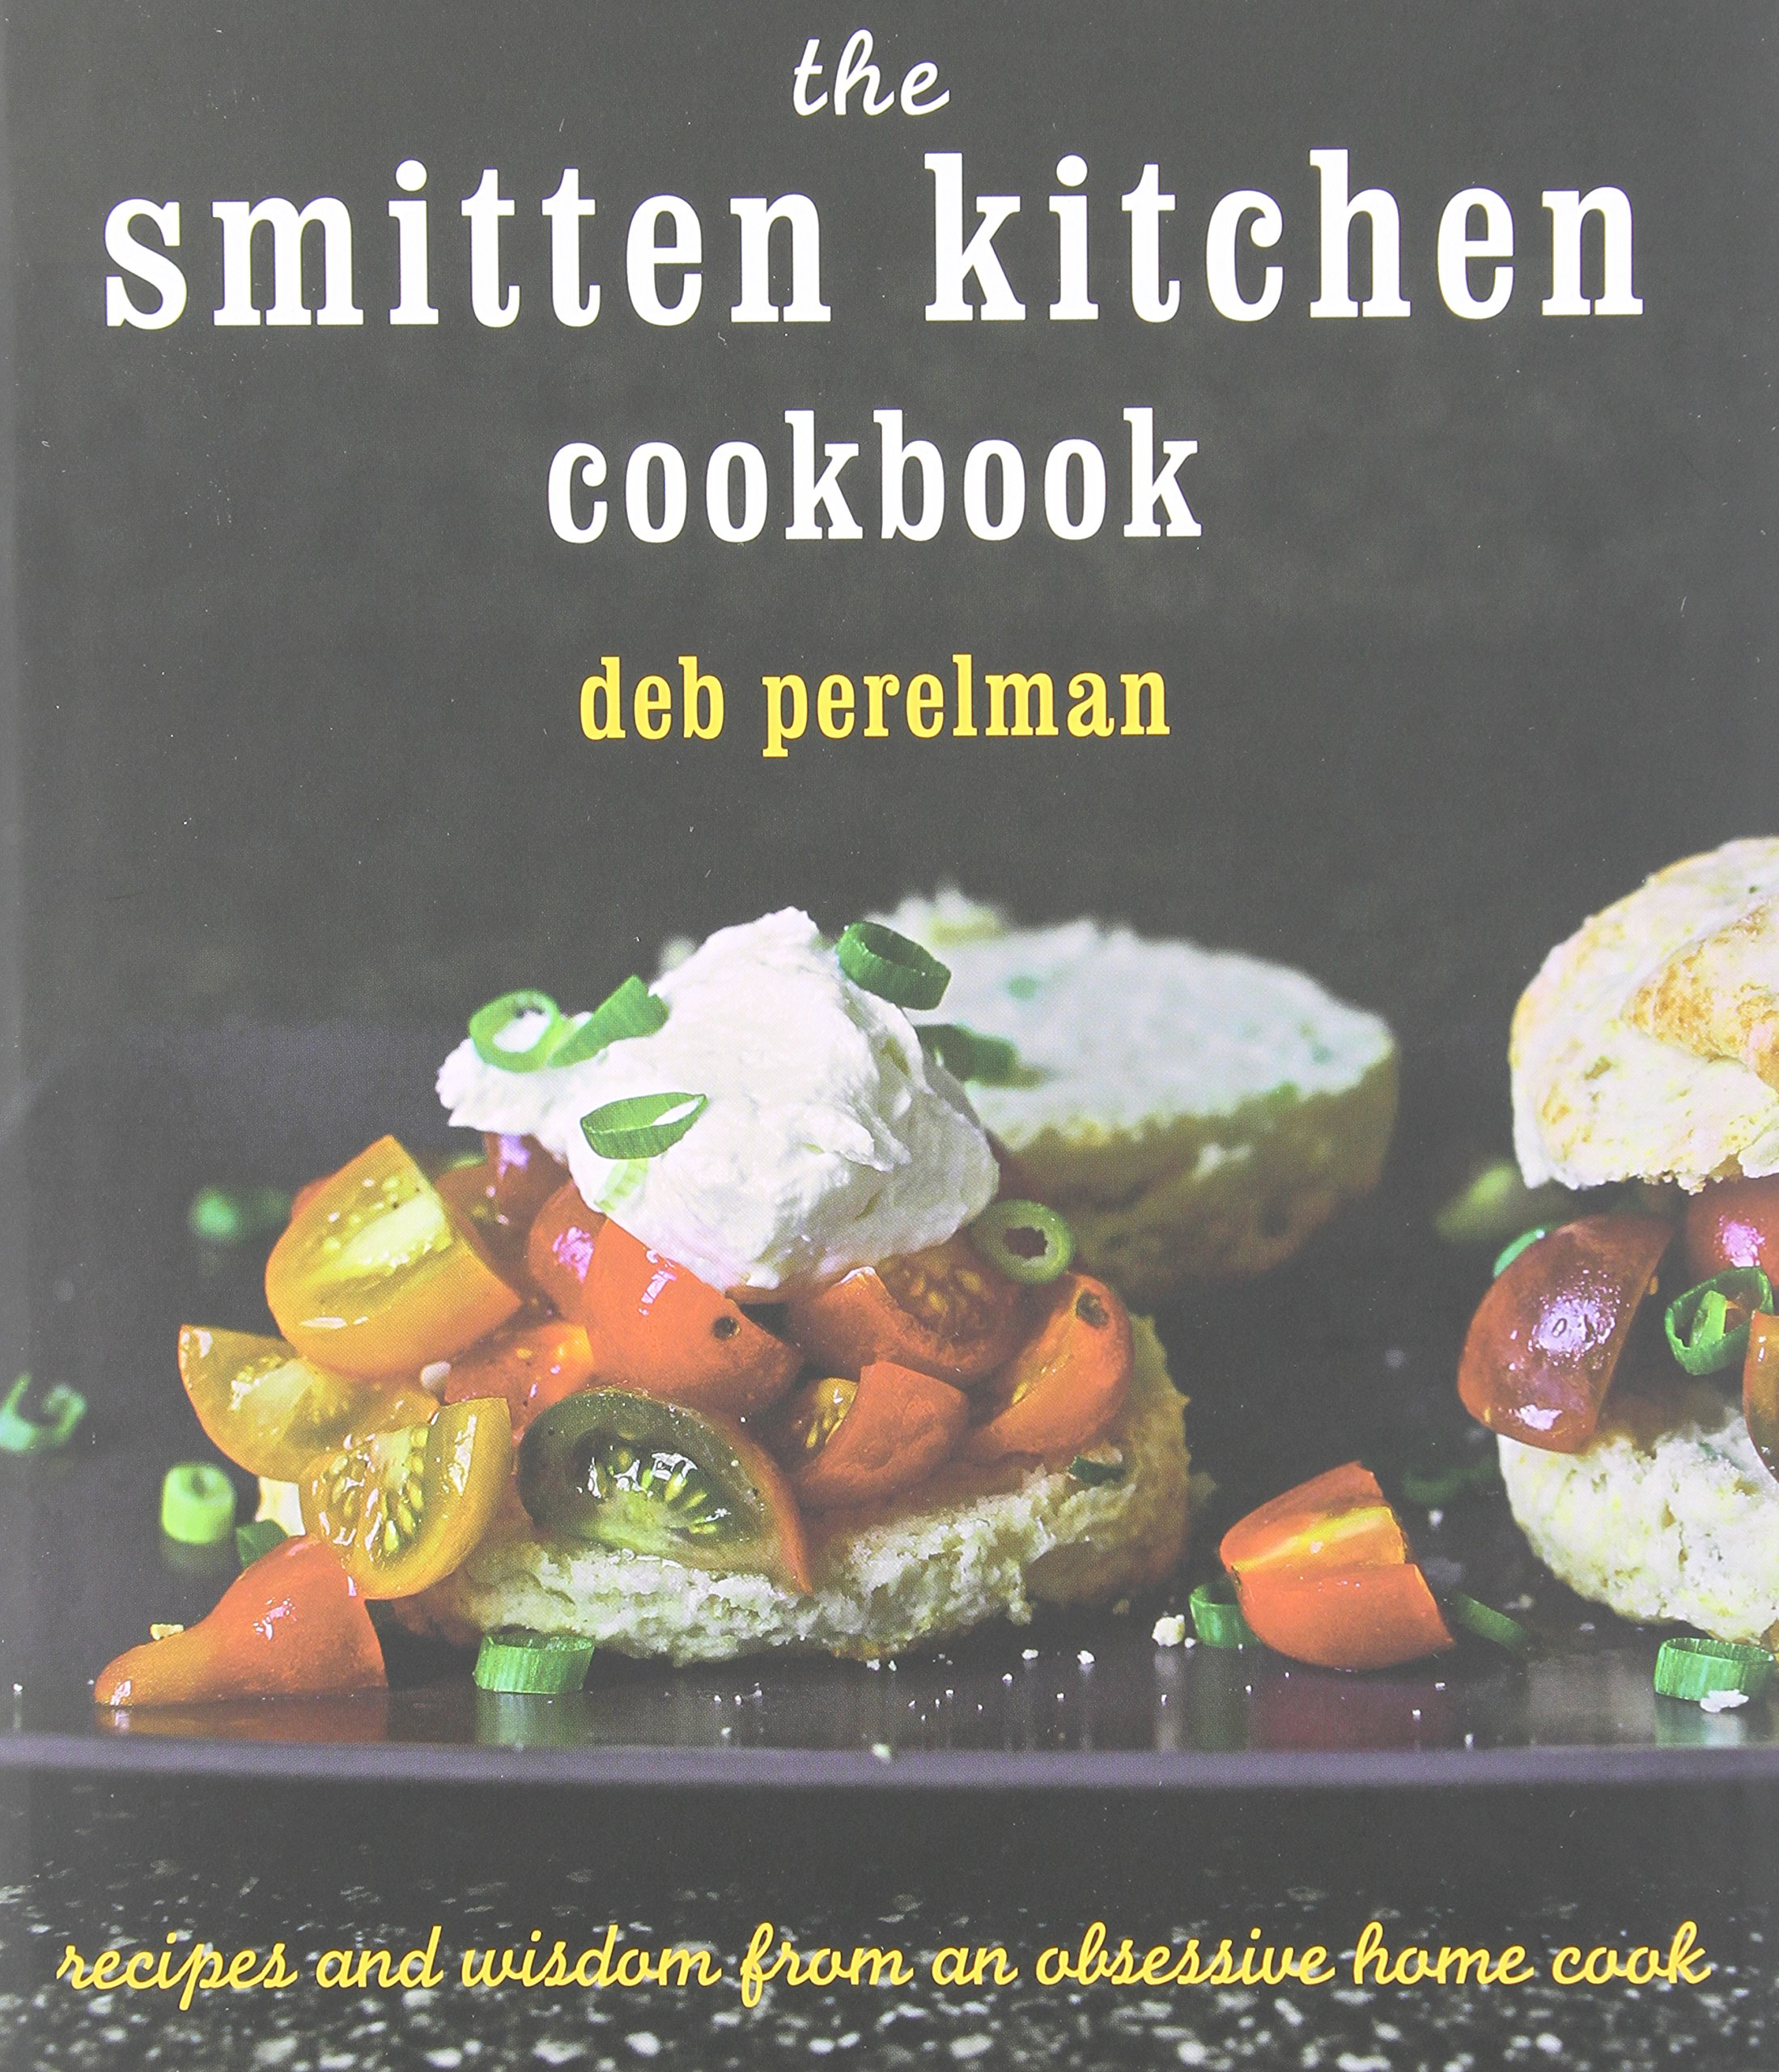 The Smitten Kitchen Cookbook Deb Perelman 9780449015797